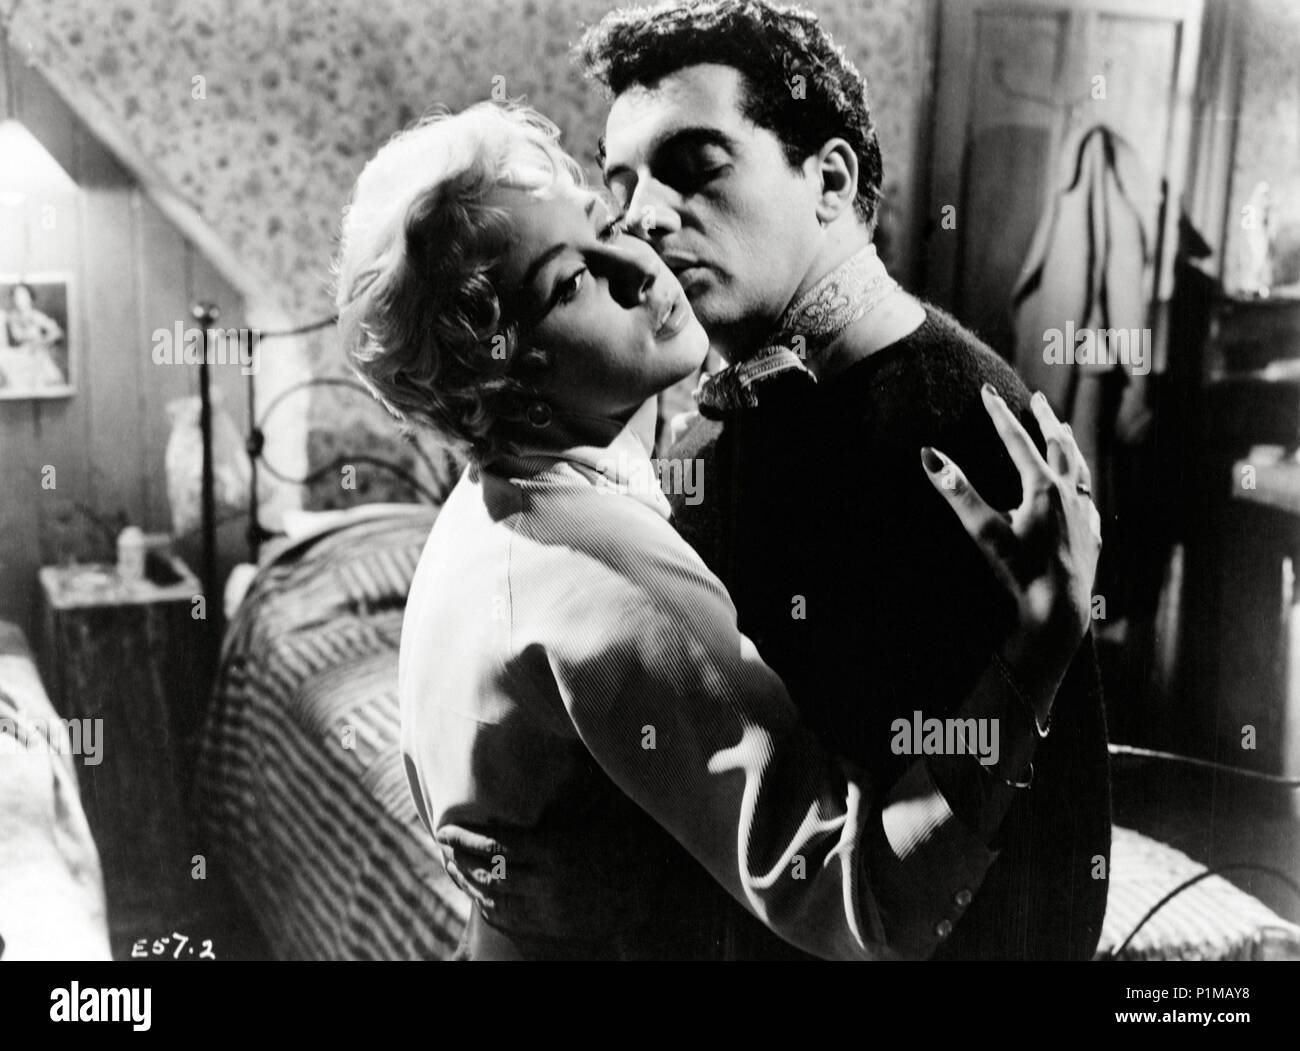 Original Film Title: THESE DANGEROUS YEARS.  English Title: DANGEROUS YOUTH.  Film Director: HERBERT WILCOX.  Year: 1957.  Stars: FRANKIE VAUGHAN; CAROLE LESLEY. Credit: AB-PATHE / Album - Stock Image